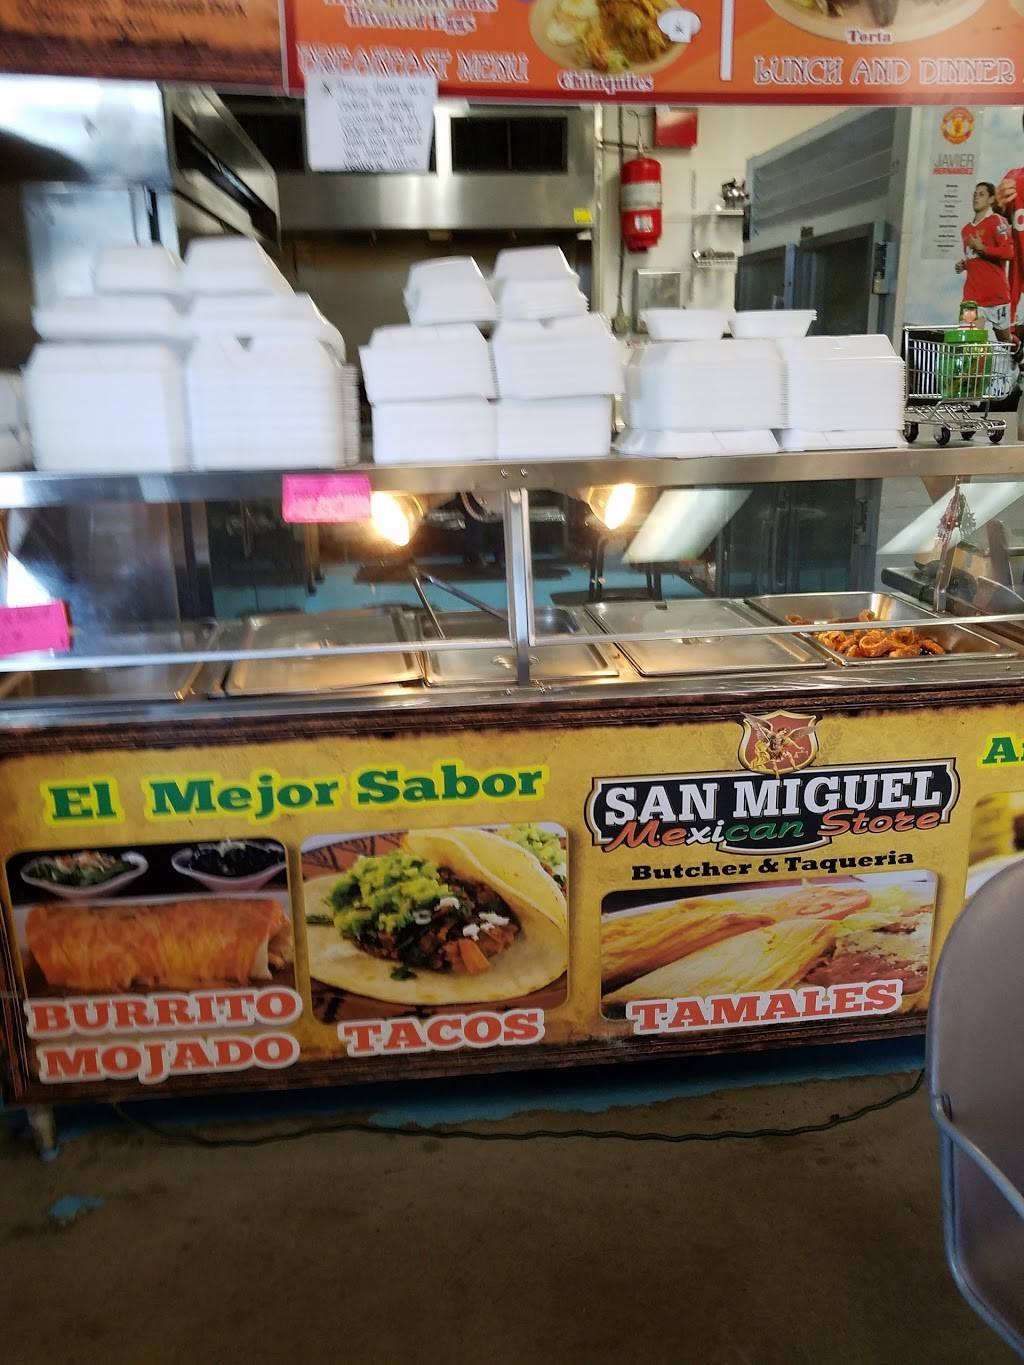 San Miguel Mexican Store And Taqueria | restaurant | 2024 54th Ave E, Fife, WA 98424, USA | 2538960312 OR +1 253-896-0312